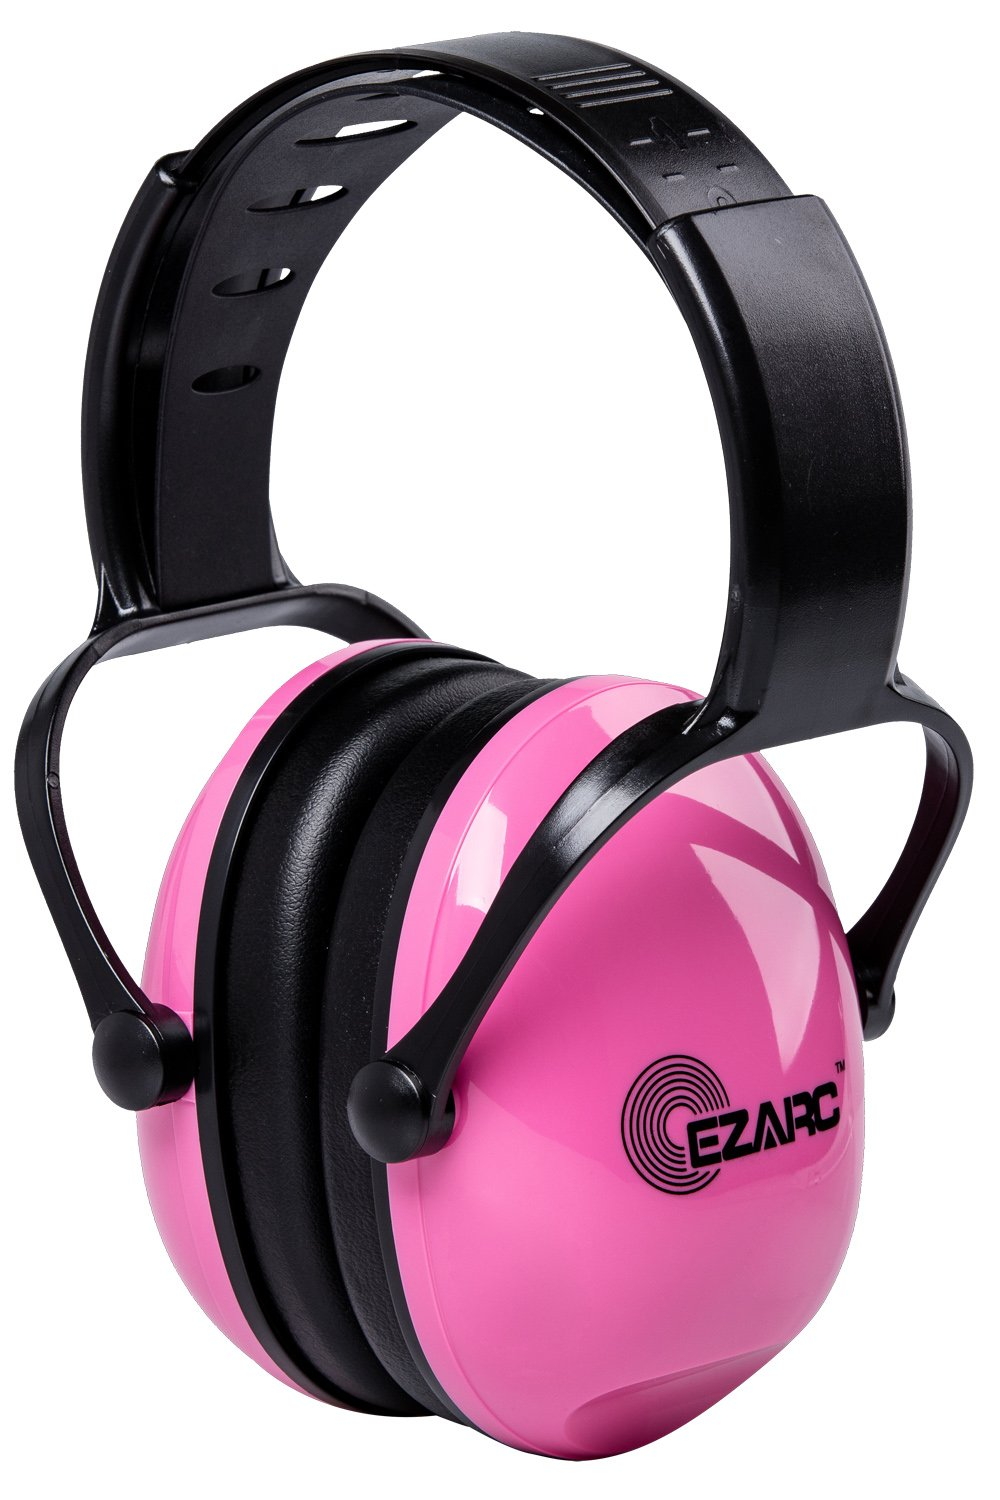 EZARC Comfortable Women and Kids Safety Ear Muffs 30dB for Hearing Protection - Noise Reduction Earmuffs for Shooting Sports Events Reading, Pink